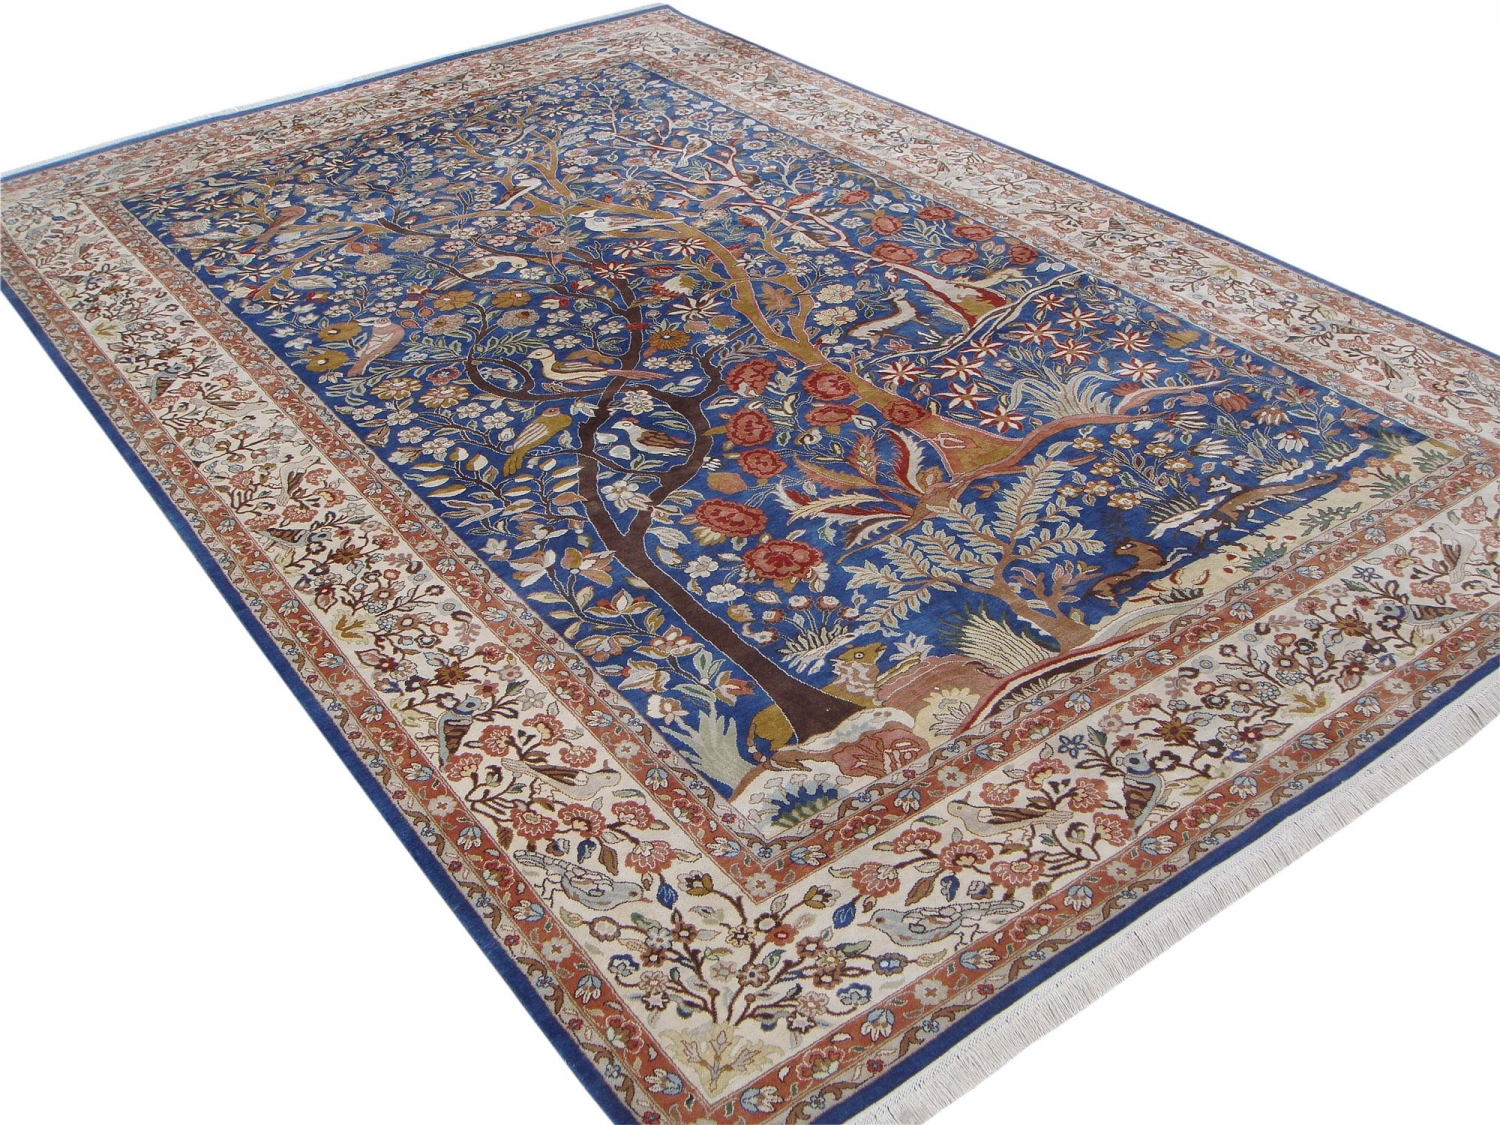 Tehran Garden of Paradise design silk pile carpet